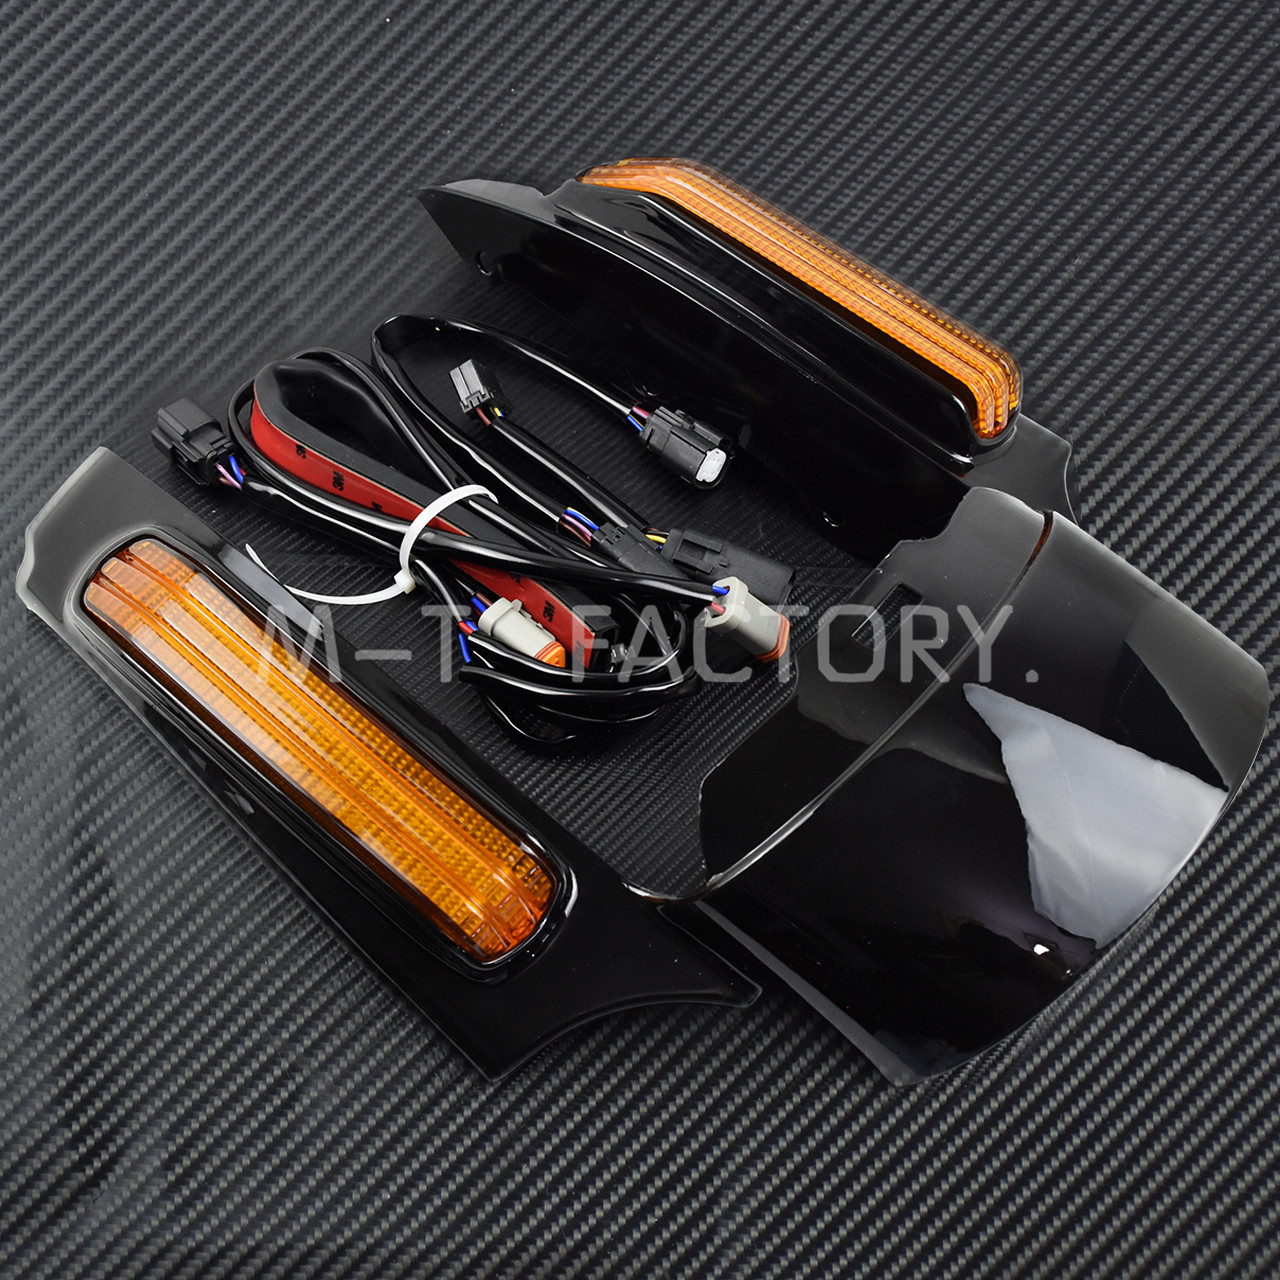 Image 2 - Motorcycle LED Light Rear Fender Extension Fascia Set For Harley Touring Electra Road Glide 2014 Up FLTRXS Ultra Limited FLHXCovers & Ornamental Mouldings   -